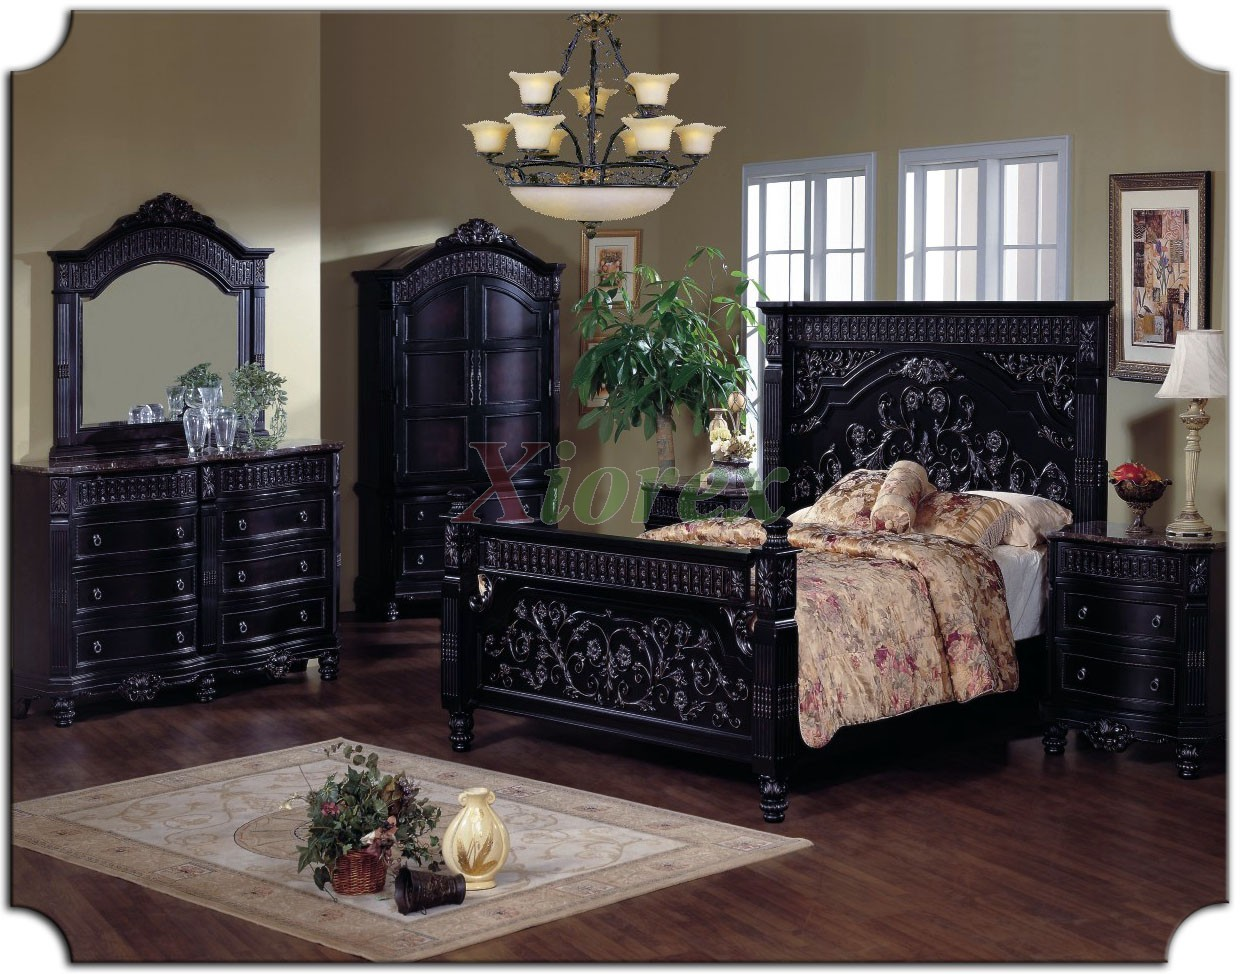 Poster Bed Sets with Tall Headboard Queen Bed   Tall Headboard King Bed    Xiorex. Poster Bedroom Furniture Set w  Tall Headboard Beds 116   Xiorex